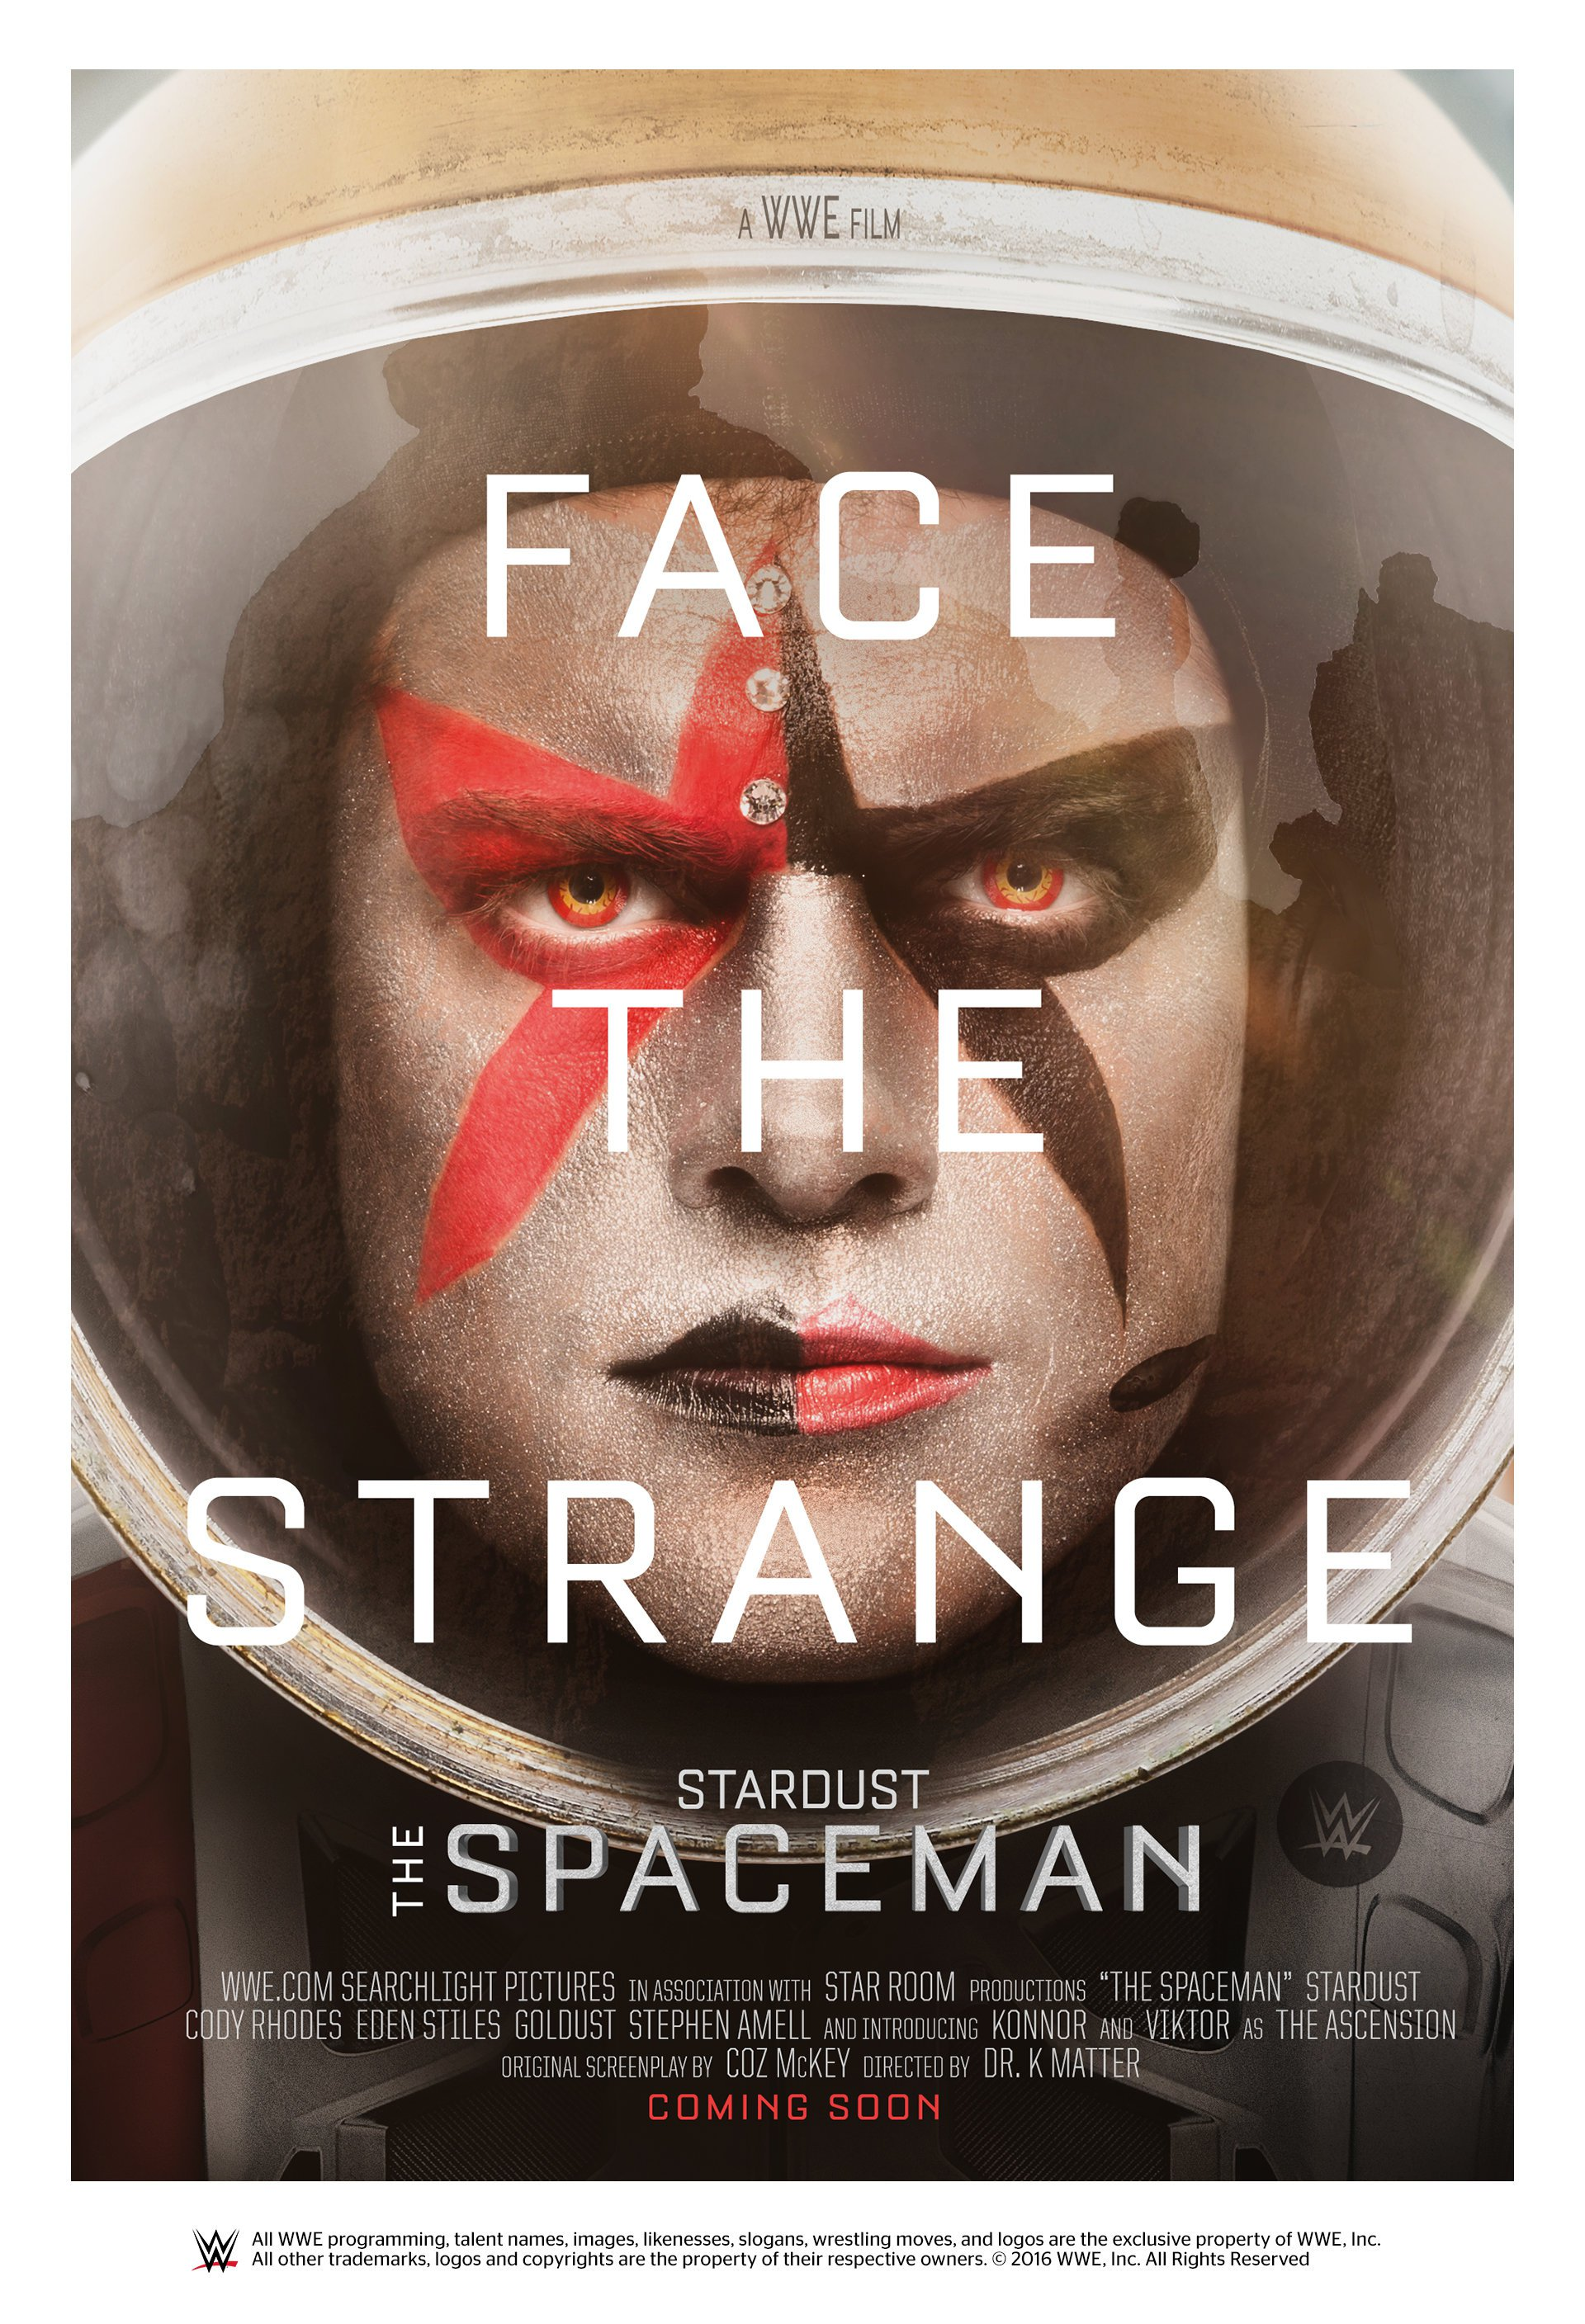 The Spaceman poster